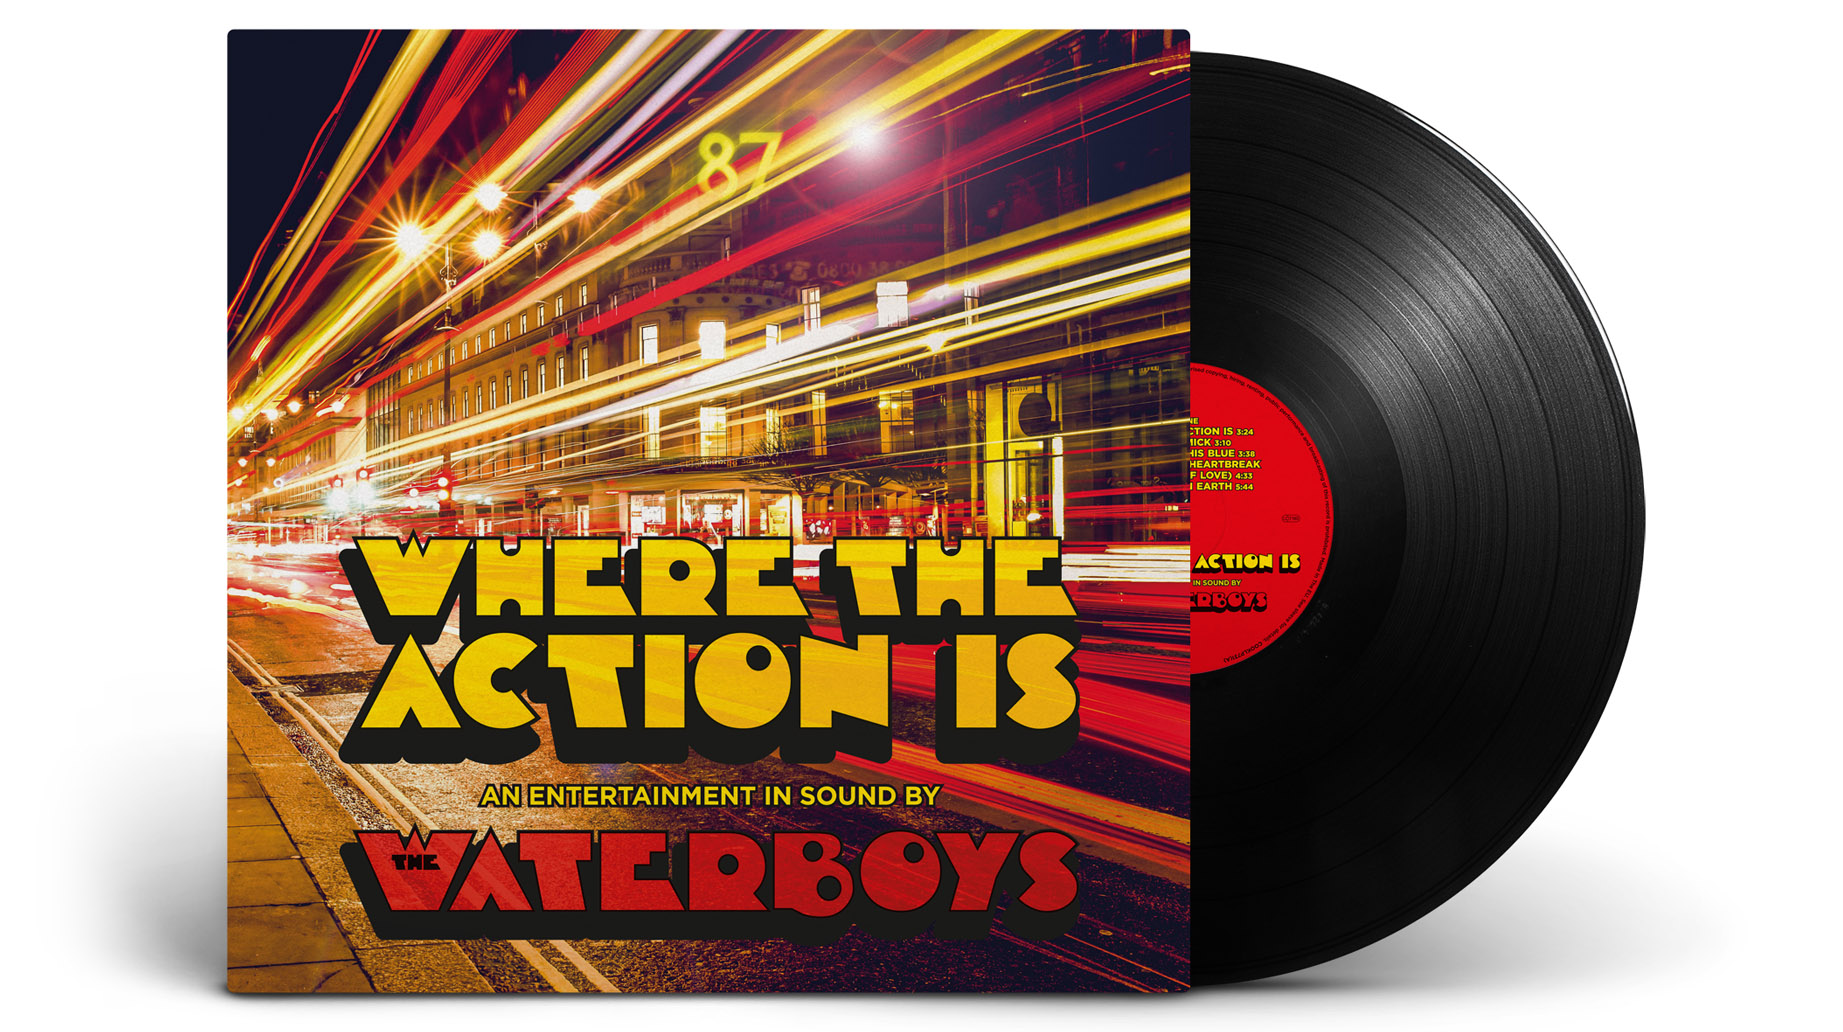 The Waterboys - Where The Action Is - Vinyl album cover